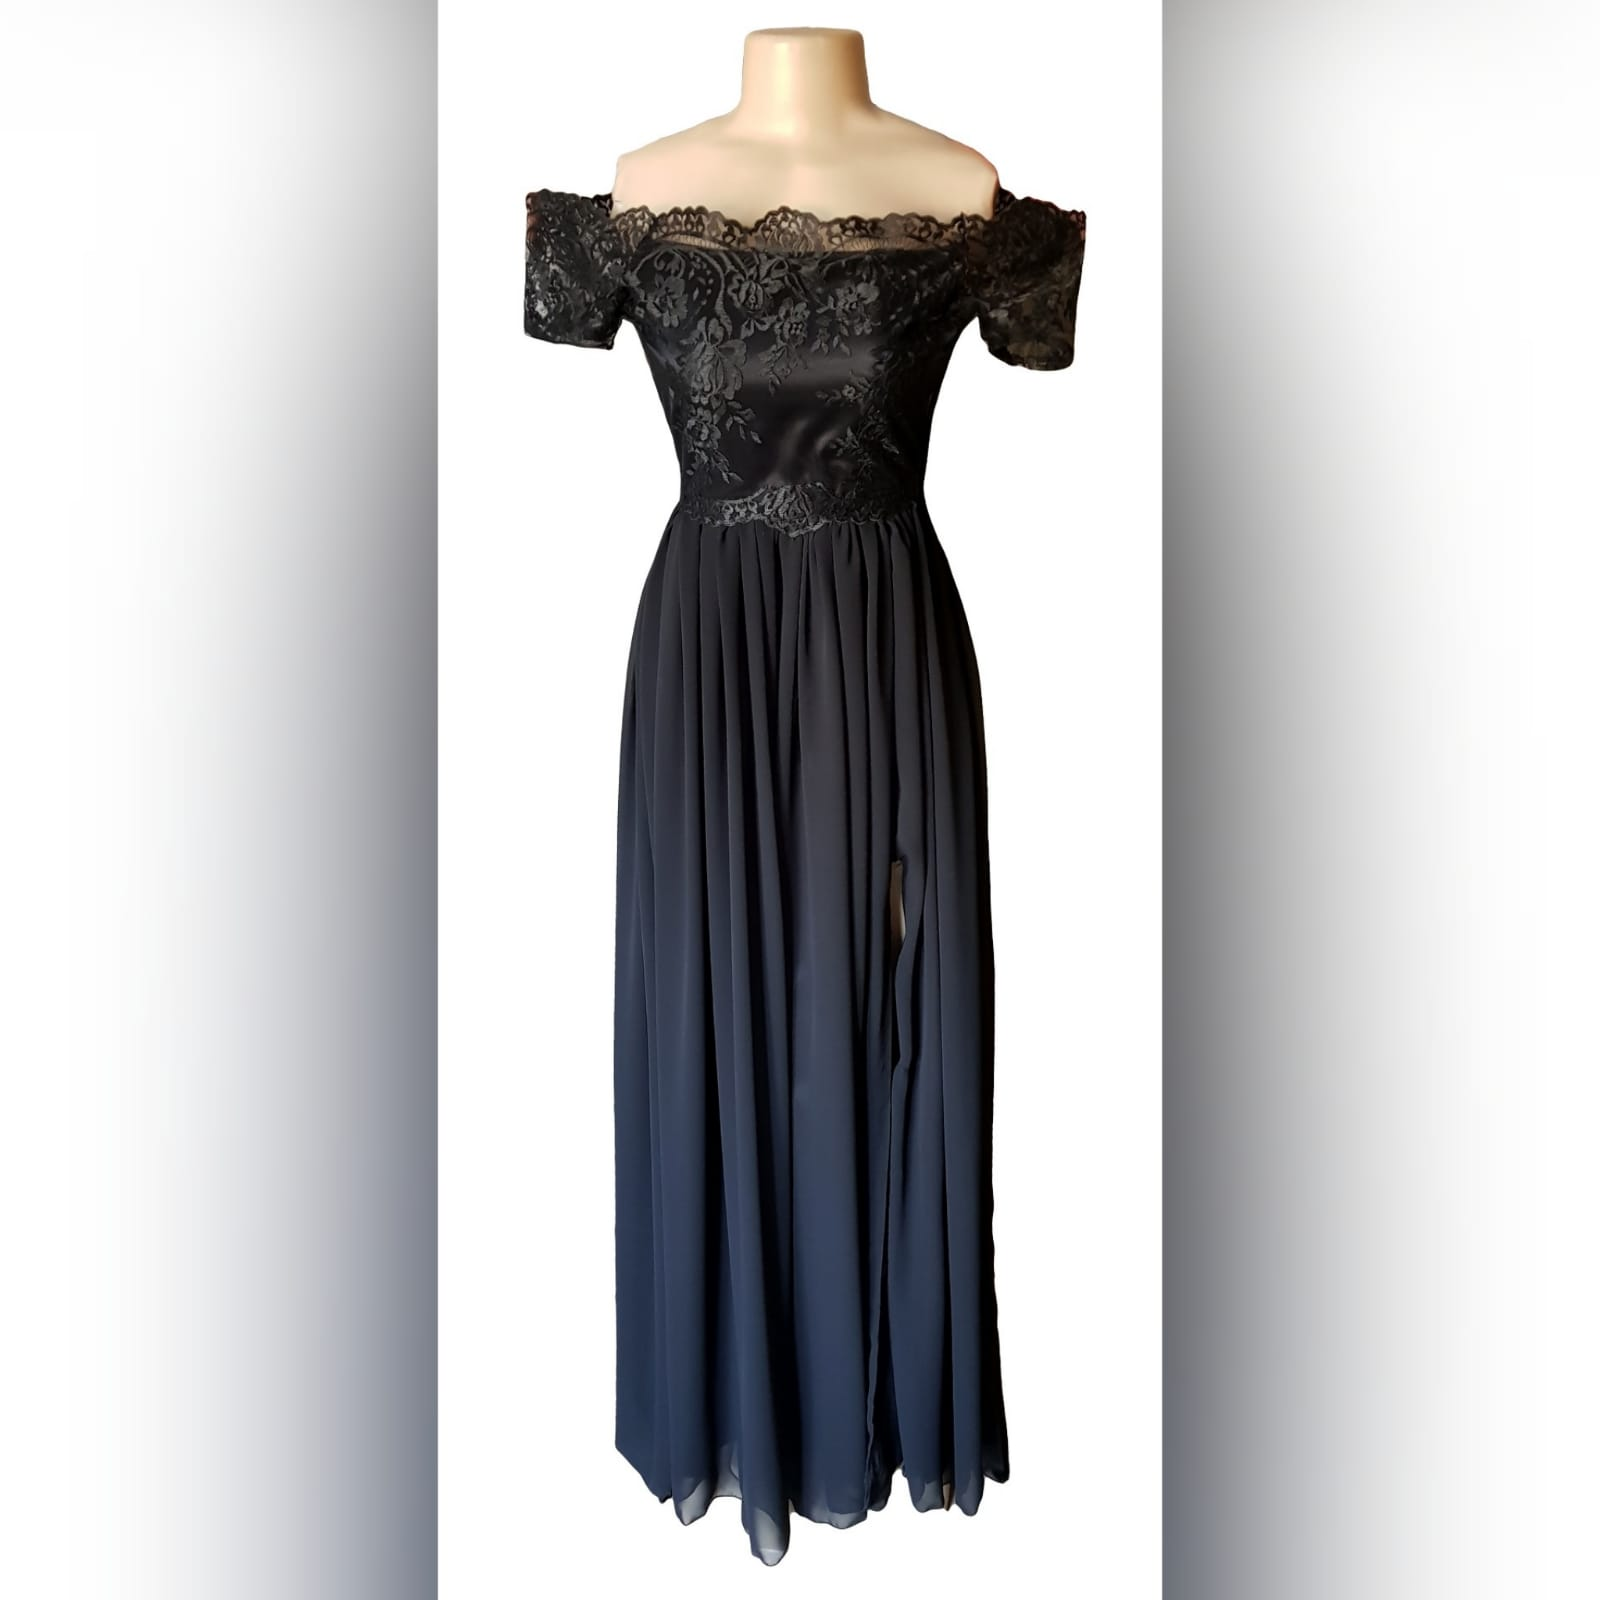 Long black prom dress with gathered chiffon 4 simple long black prom dress with gathered chiffon and a slit. Off shoulder lace bodice with a sheer back detailed with buttons and short cap sleeves.